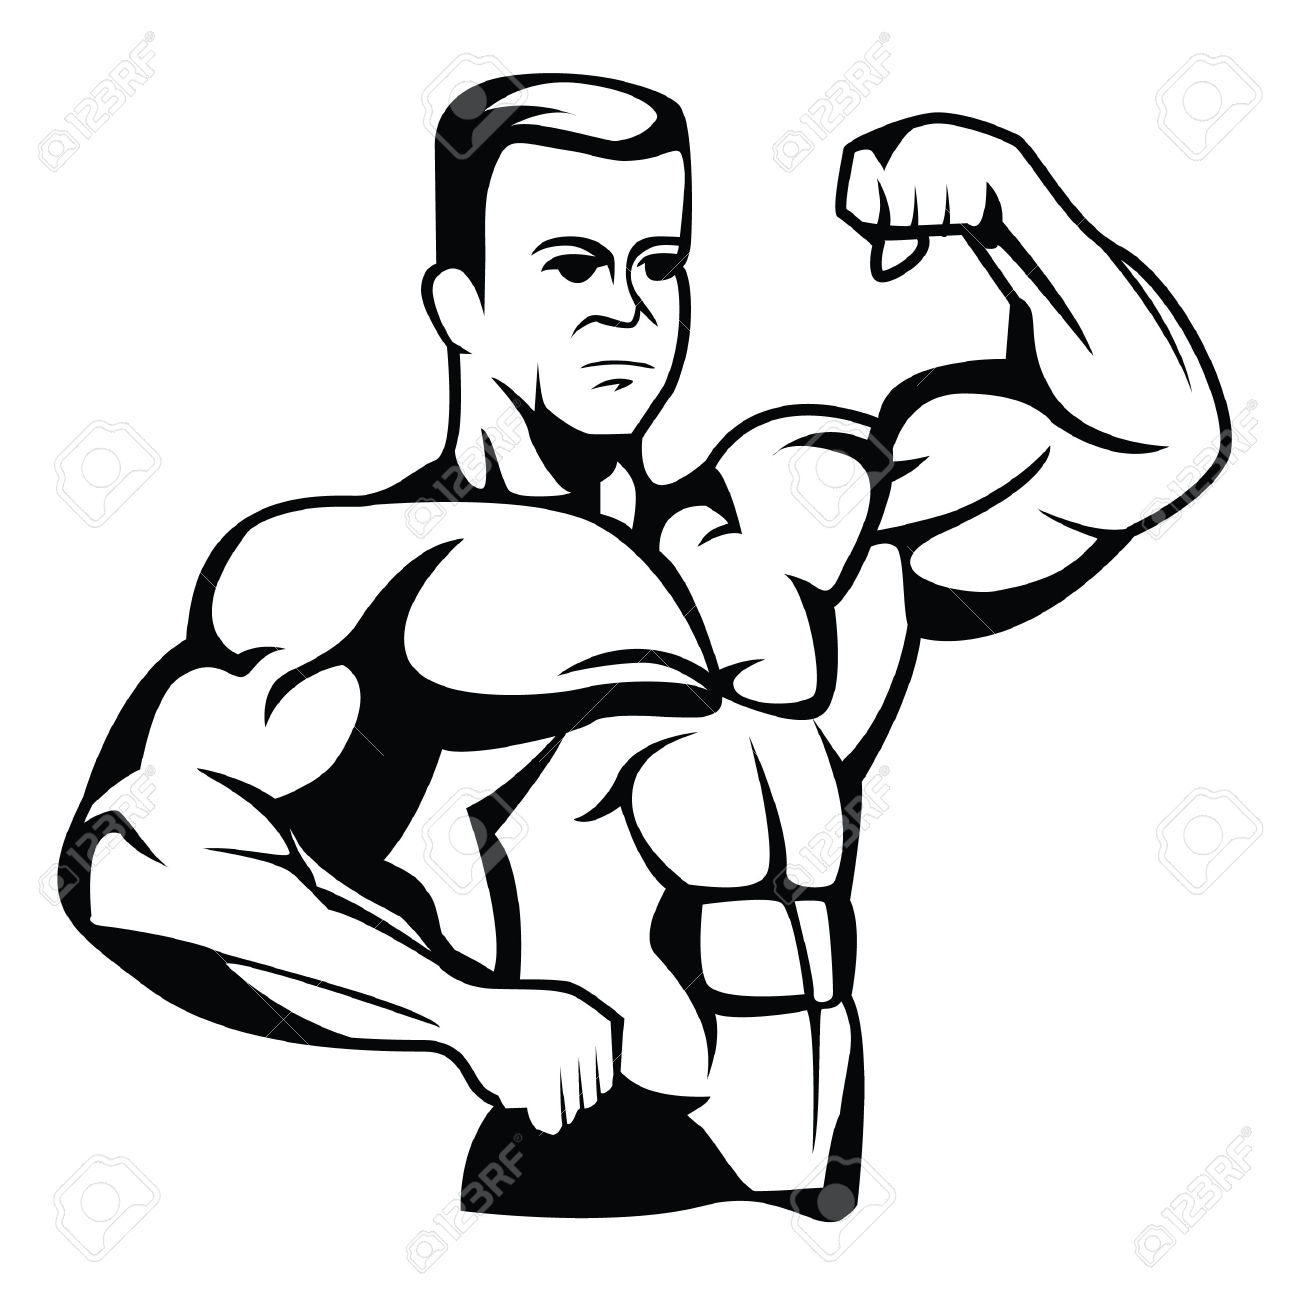 Body Builder Royalty Free Cliparts, Vectors, And Stock.